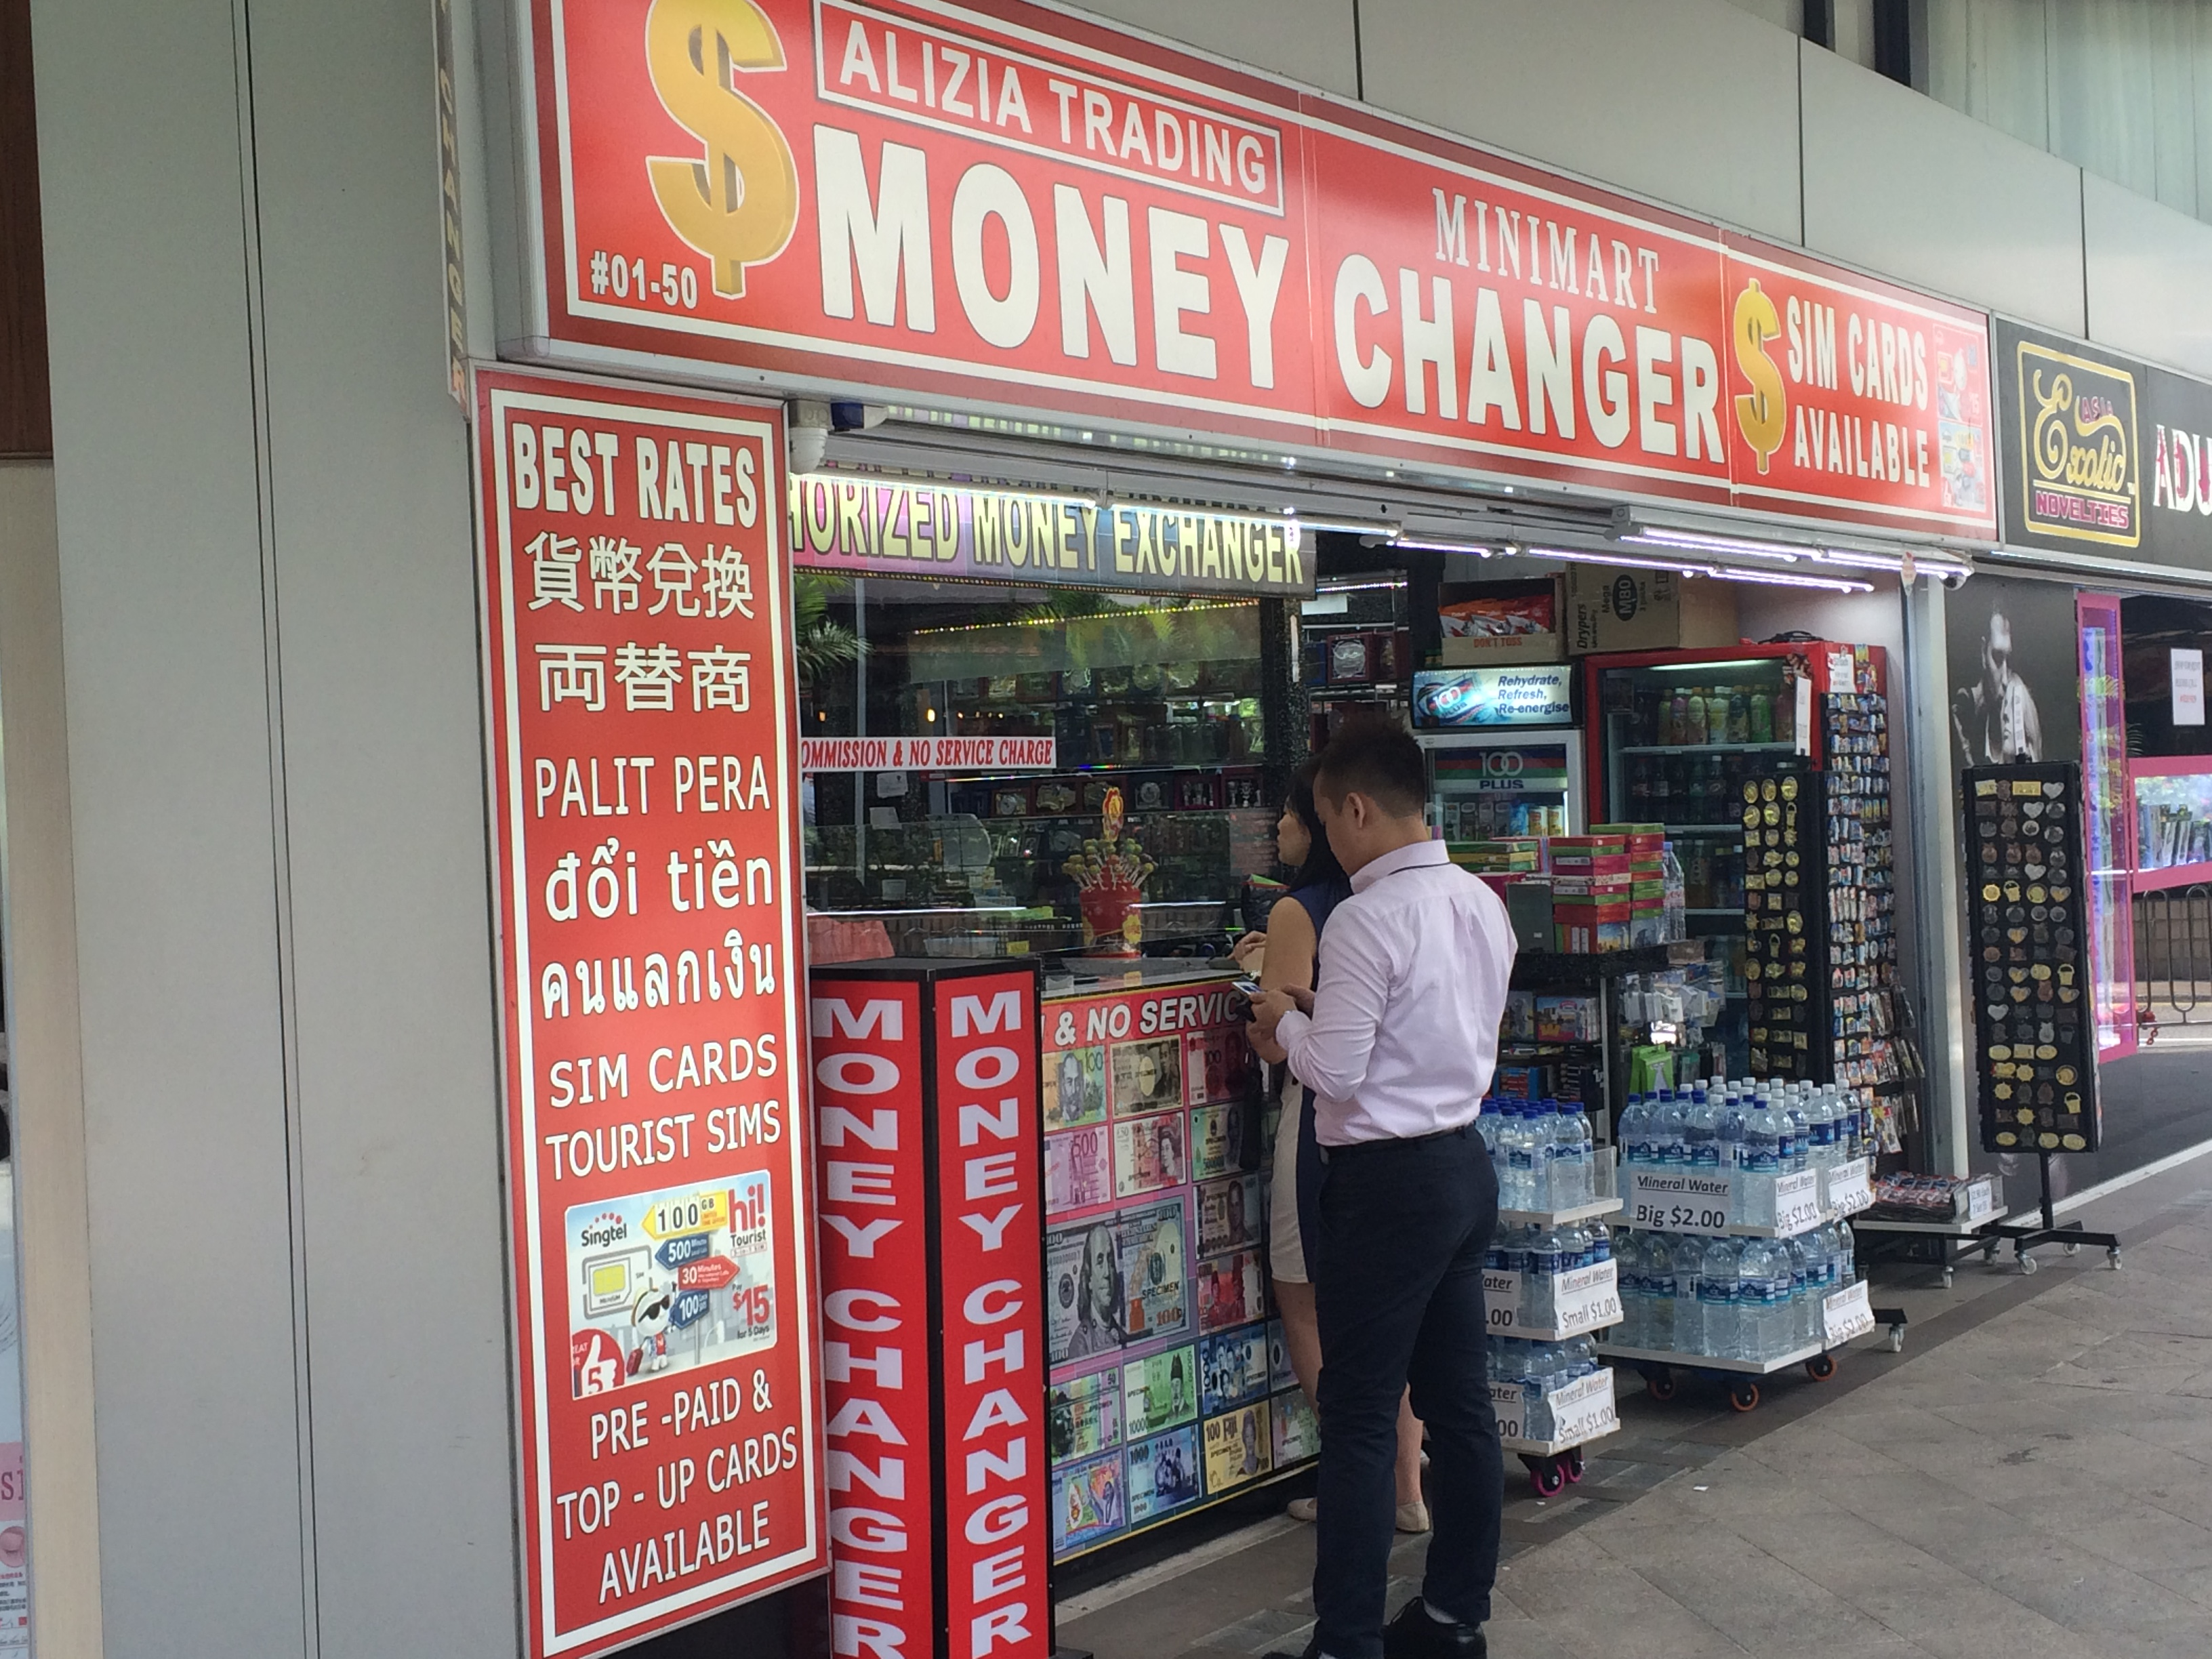 Other Money Changers near Alizia Trading